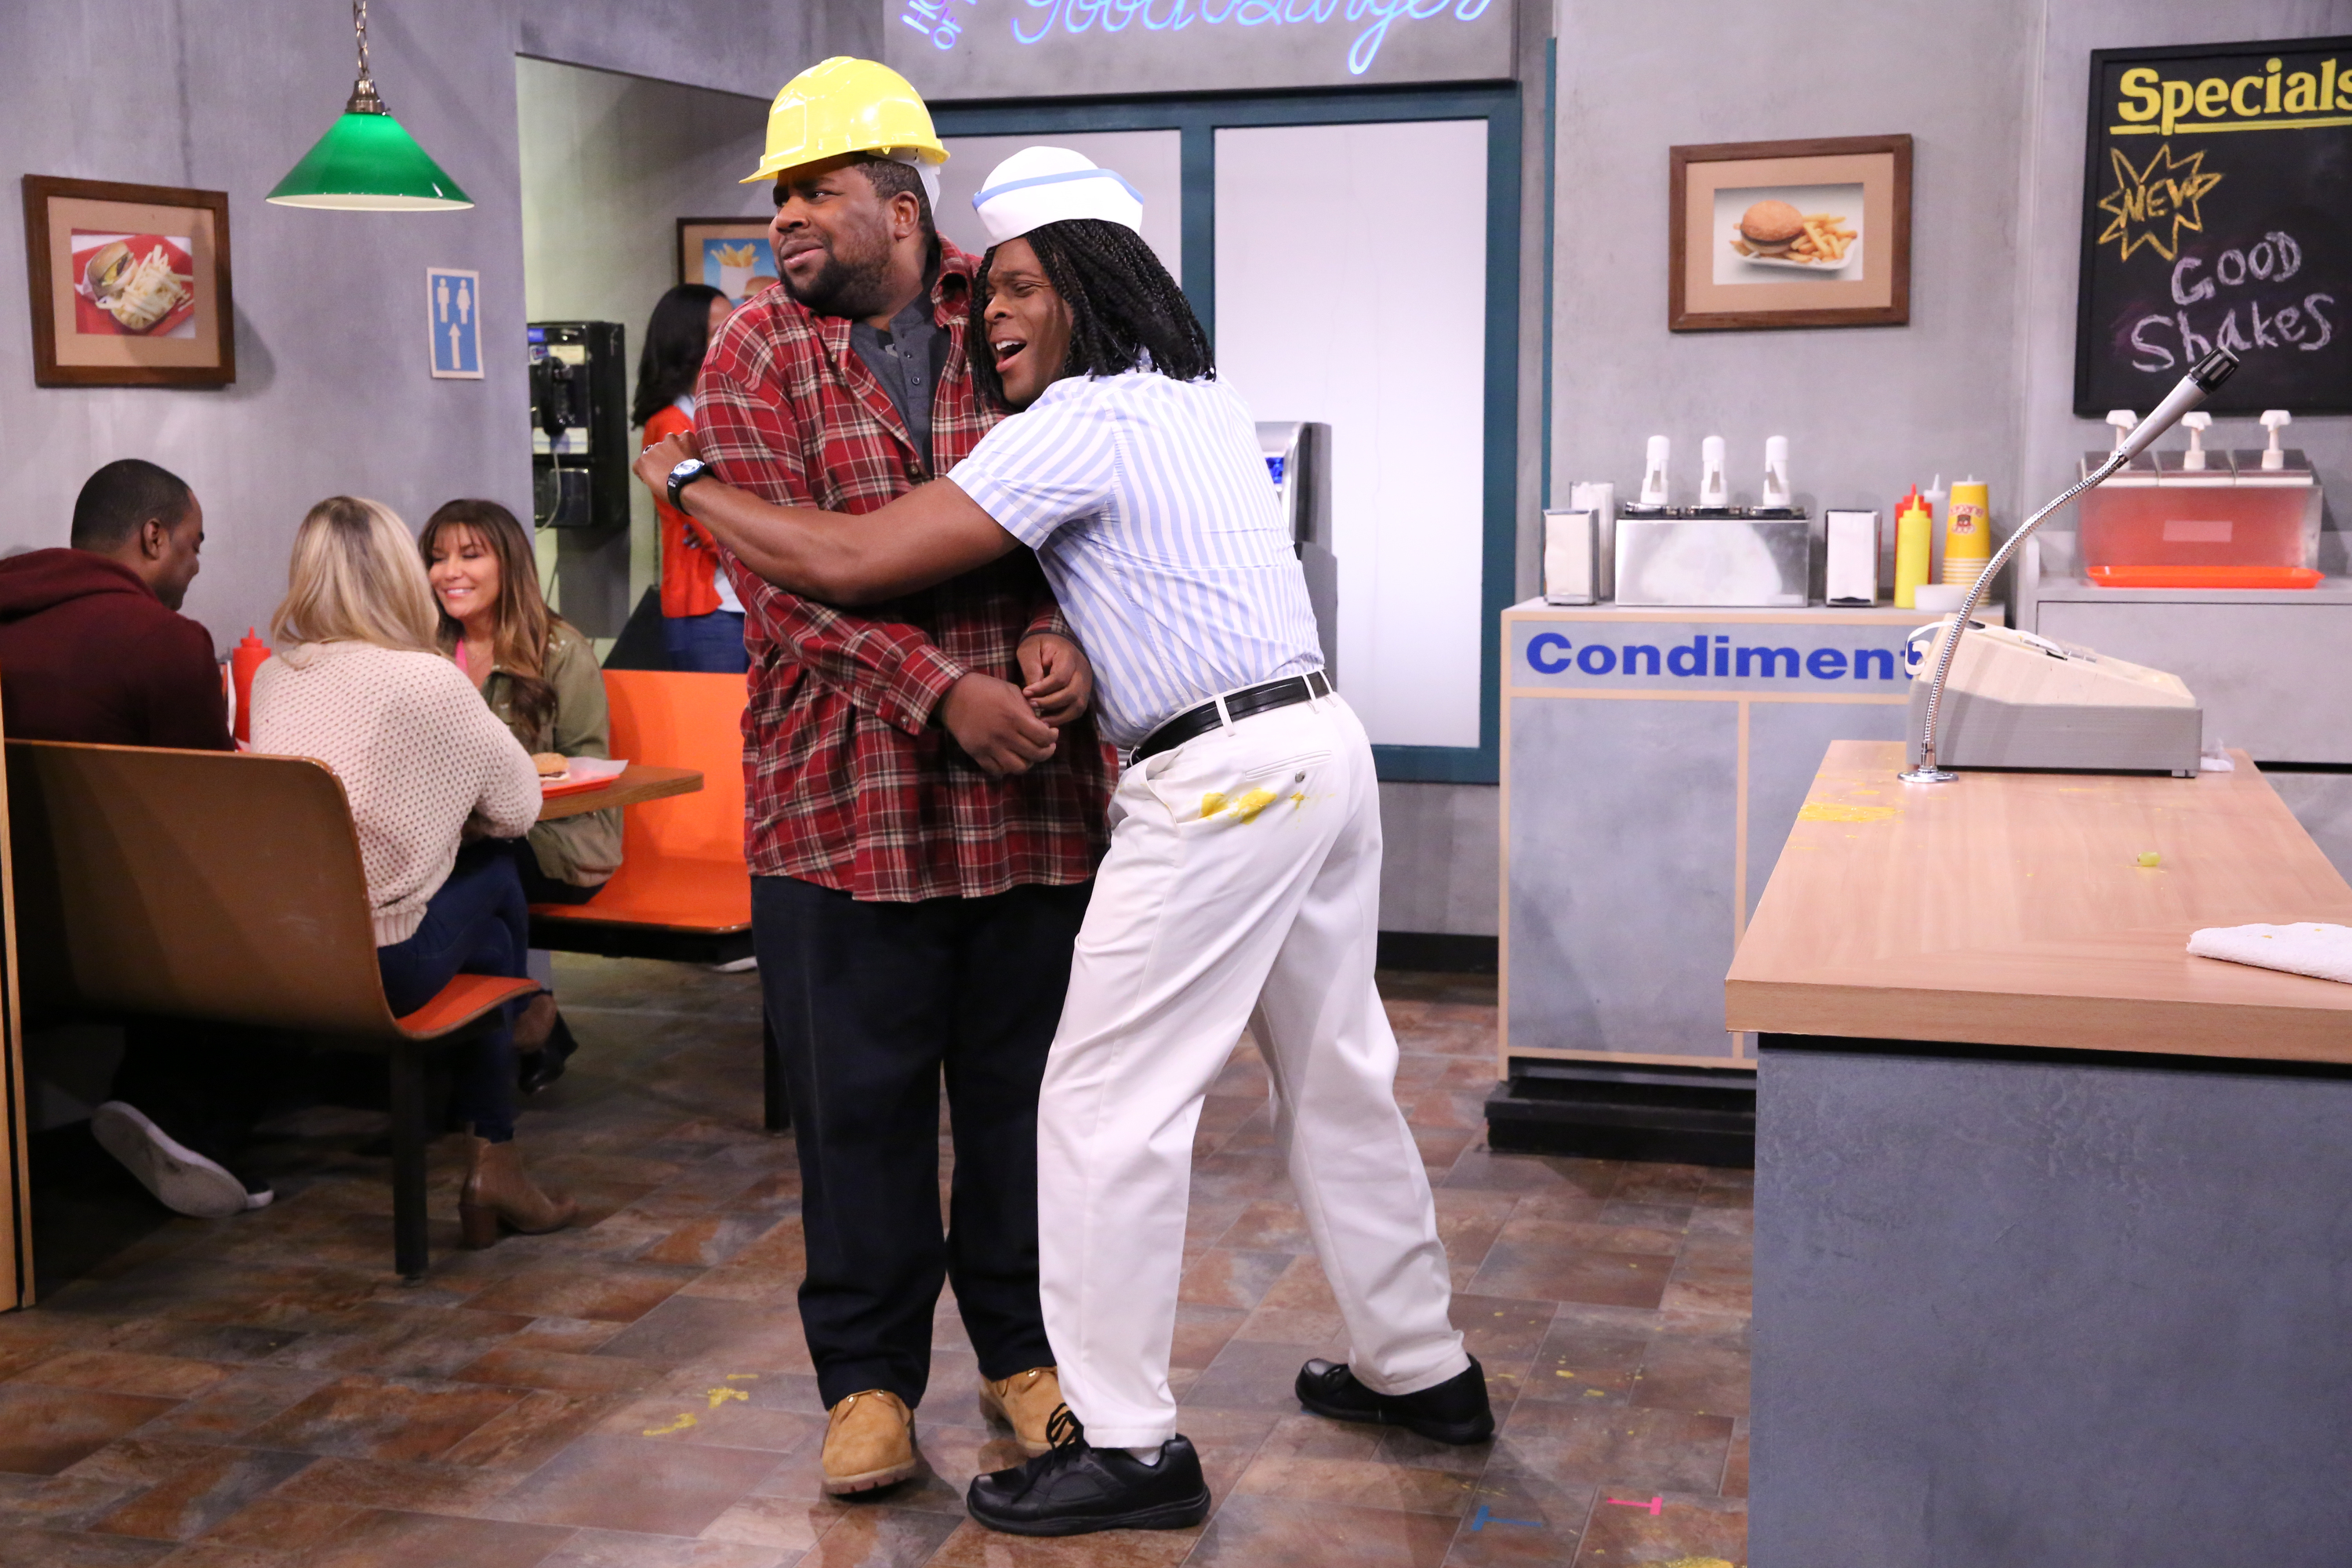 Kenan Thompson and Kel Mitchell during the  Good Burger  skit on The Tonight Show on September 23, 2015